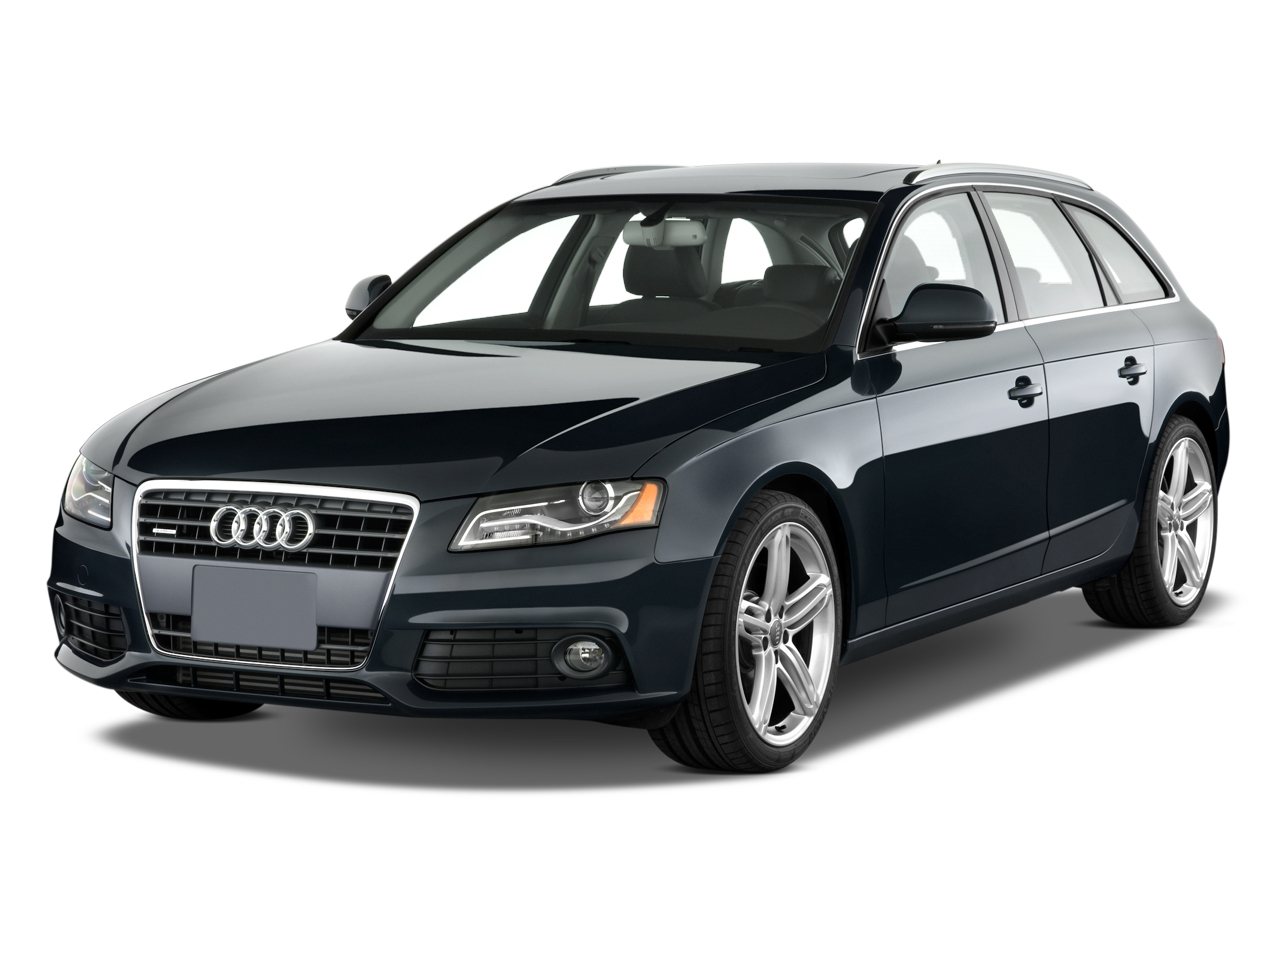 2011 Audi A4 Review Ratings Specs Prices And Photos